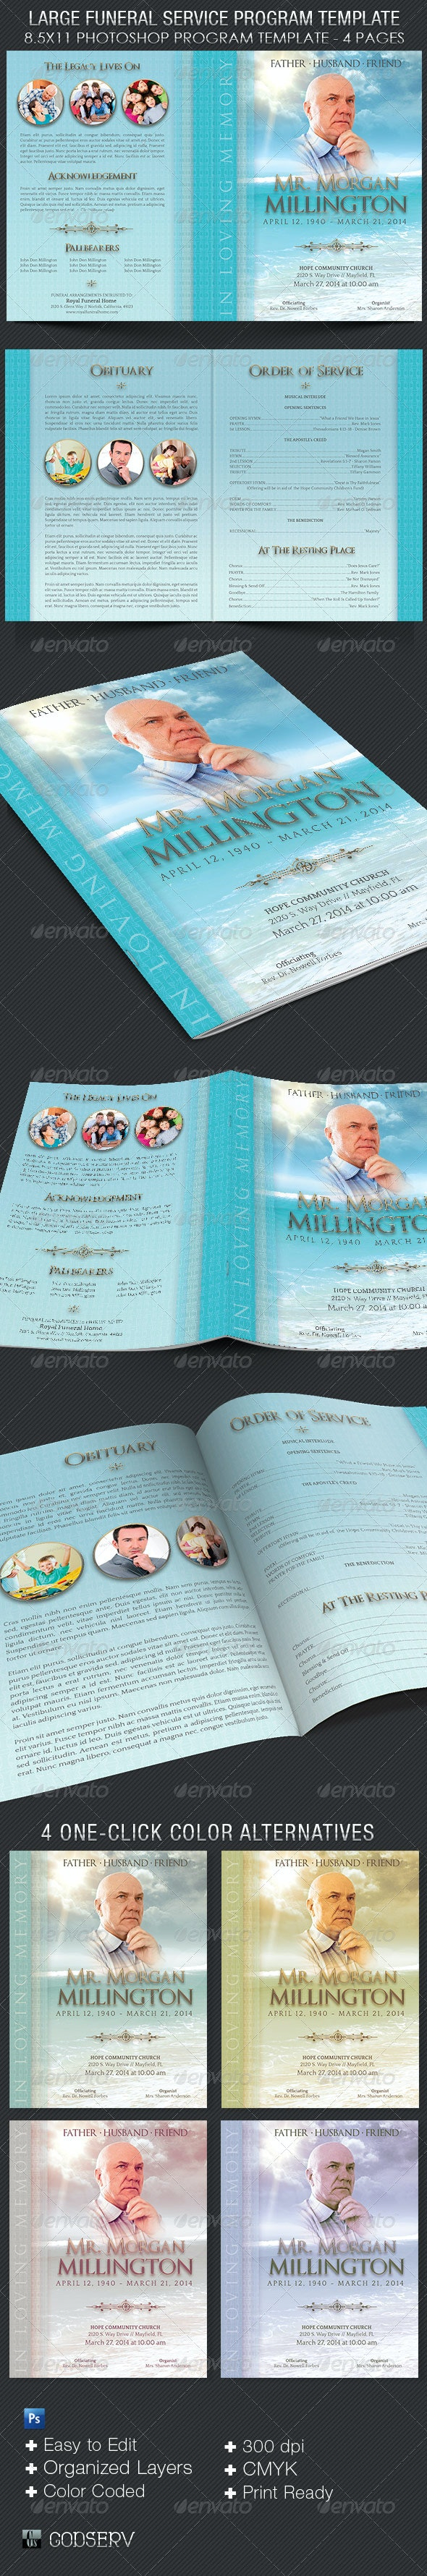 Oceanic Funeral Program Large Template - 4 Pages - Informational Brochures